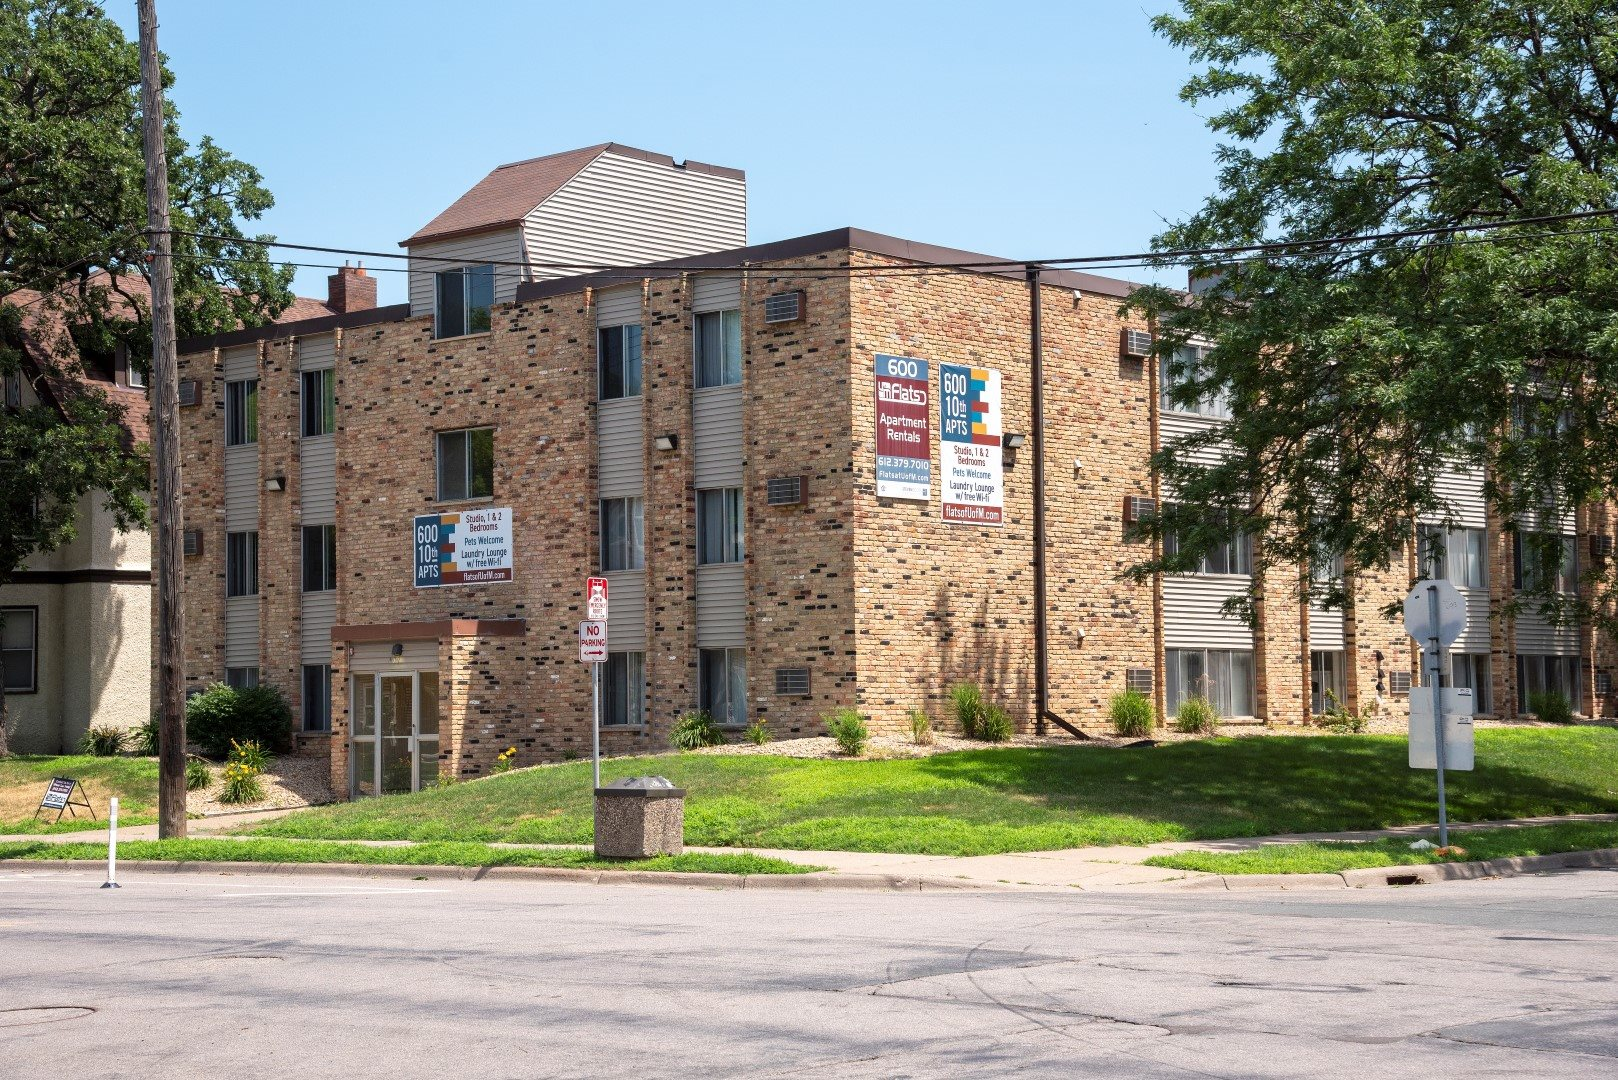 Convenient location just blocks from the U of M and on bus line.